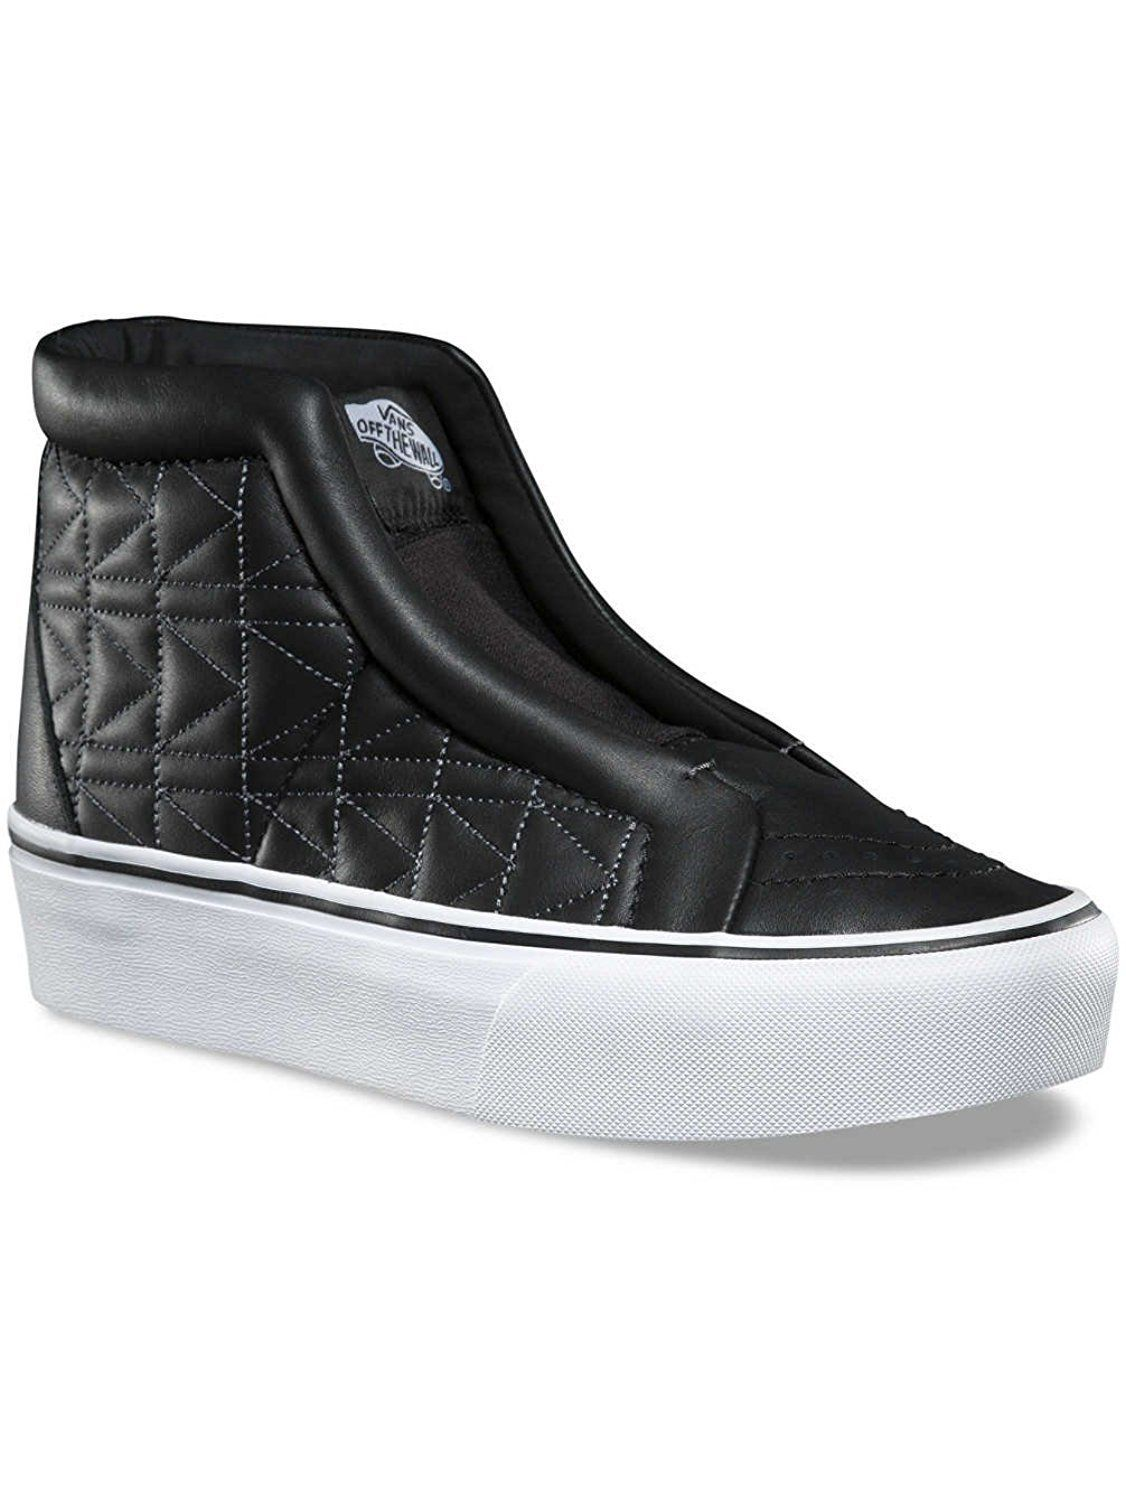 Primary image for Vans Sk8 Hi Laceless Karl Lagerfeld Chain K Quilt Black Fashion Collectors Shoes